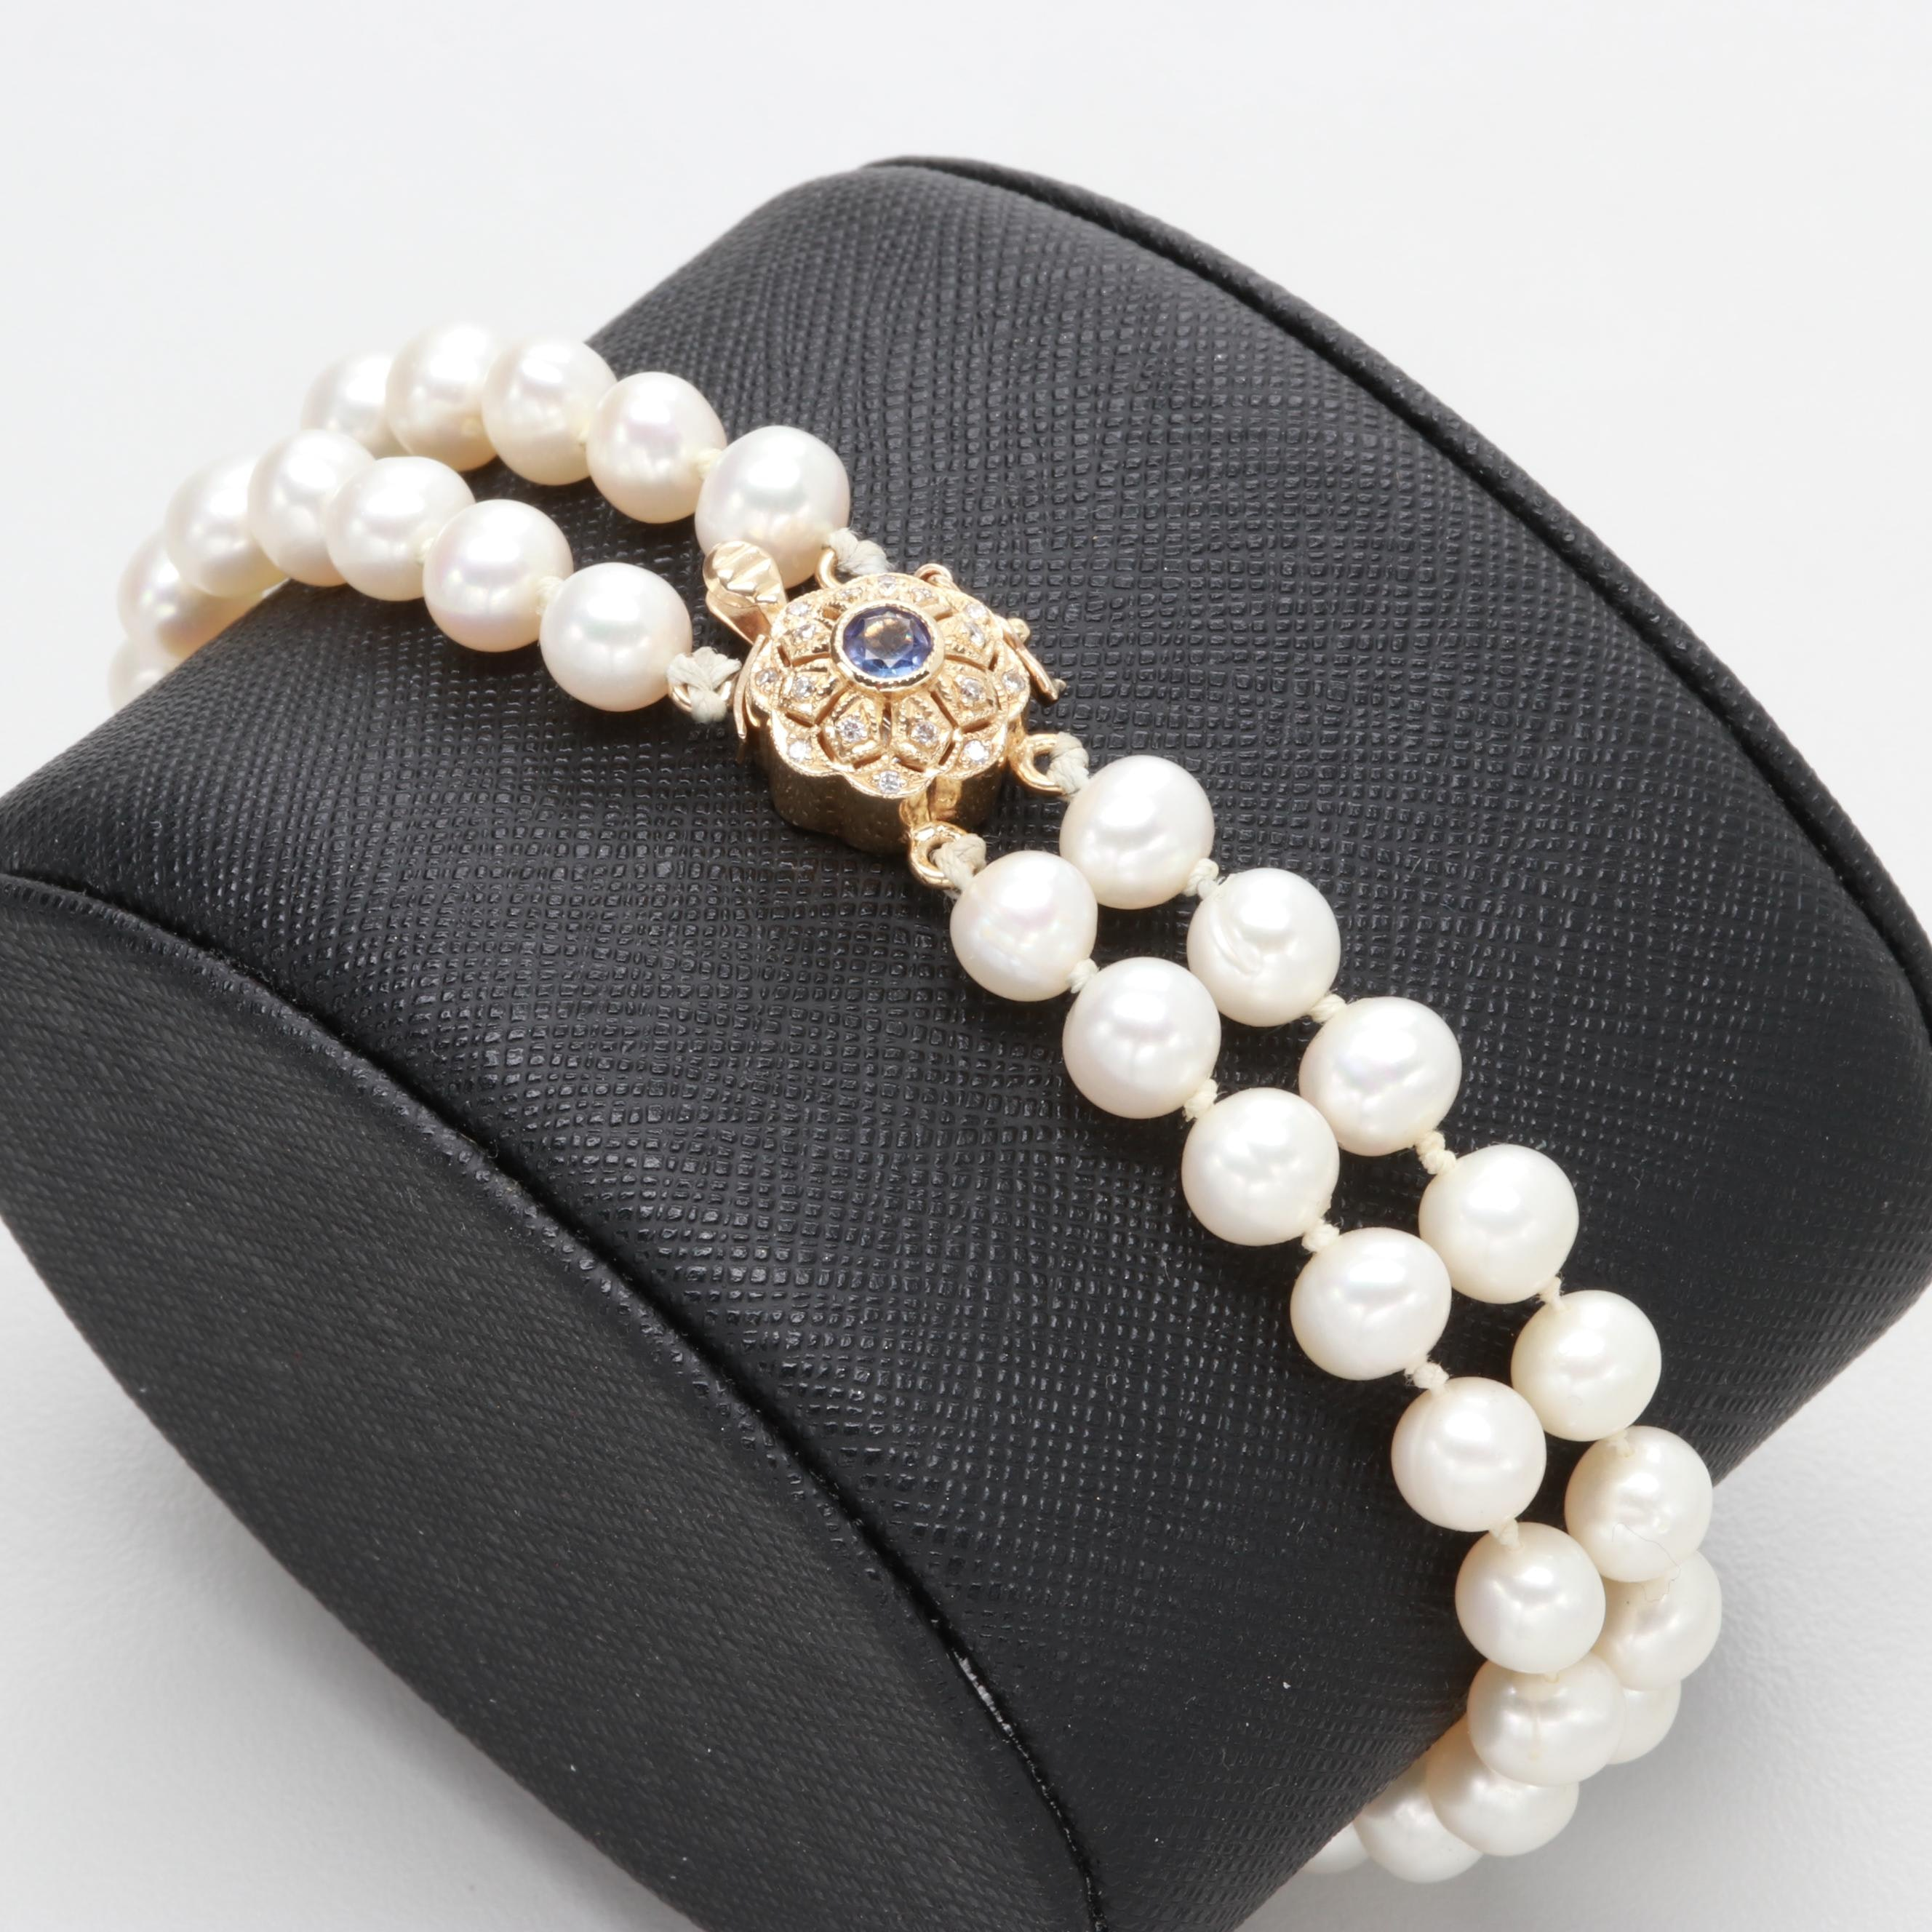 14K Yellow Gold Tanzanite, Diamond and Cultured Pearl Bracelet